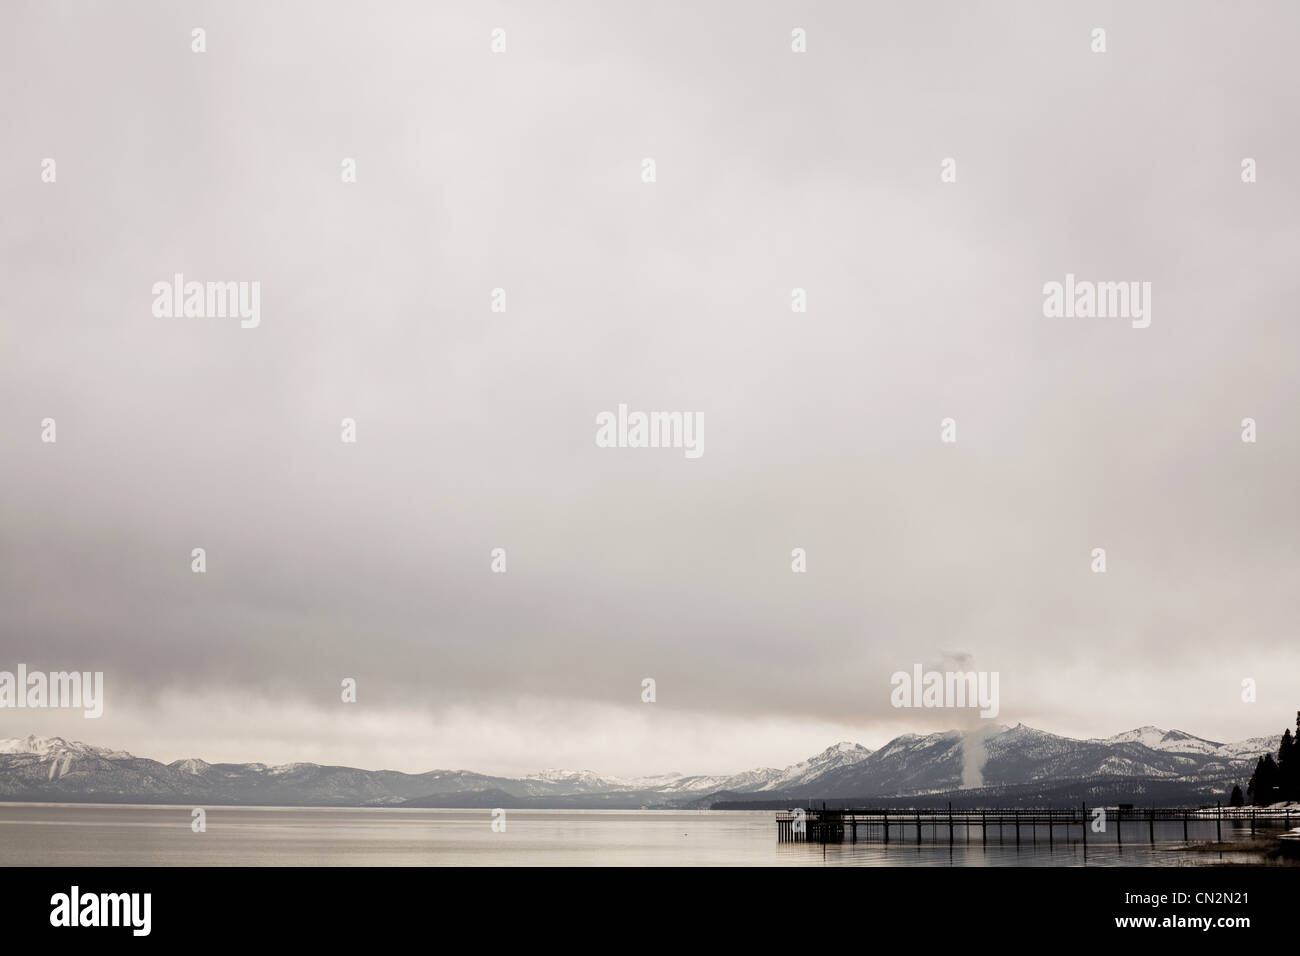 Mountains and jetty, Lake Tahoe, California, USA - Stock Image